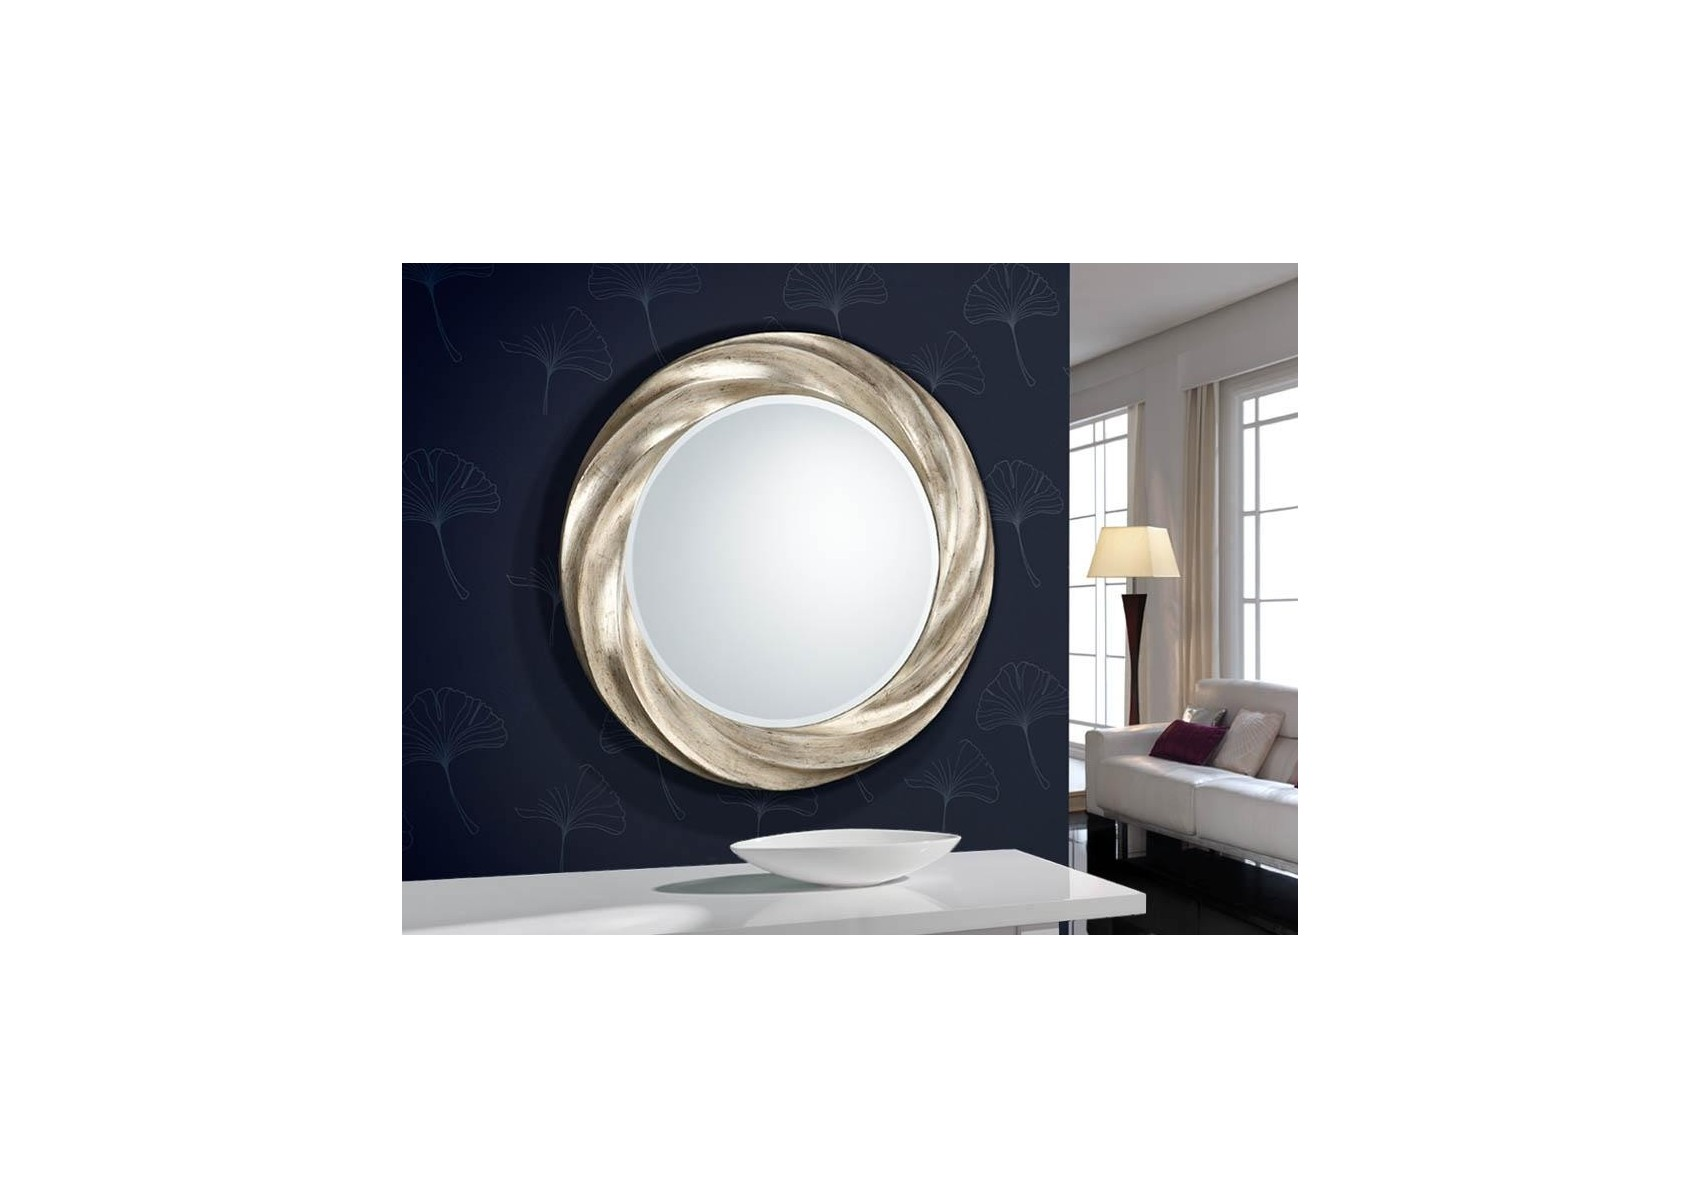 Miroir original design rond rodas deco schuller for Miroir rond design